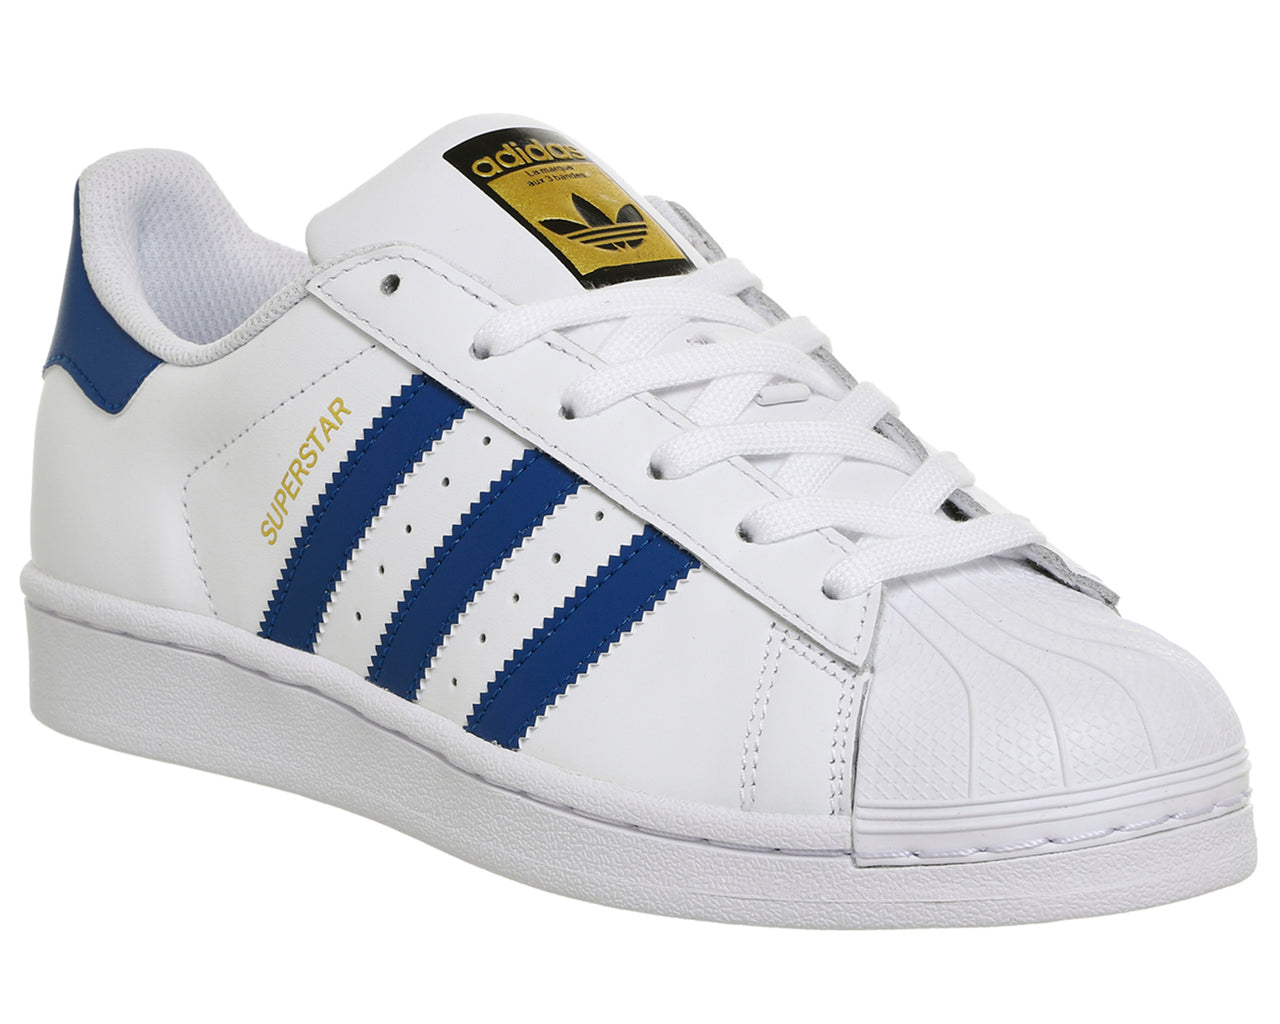 Womens Adidas Superstar Trainers White Blue